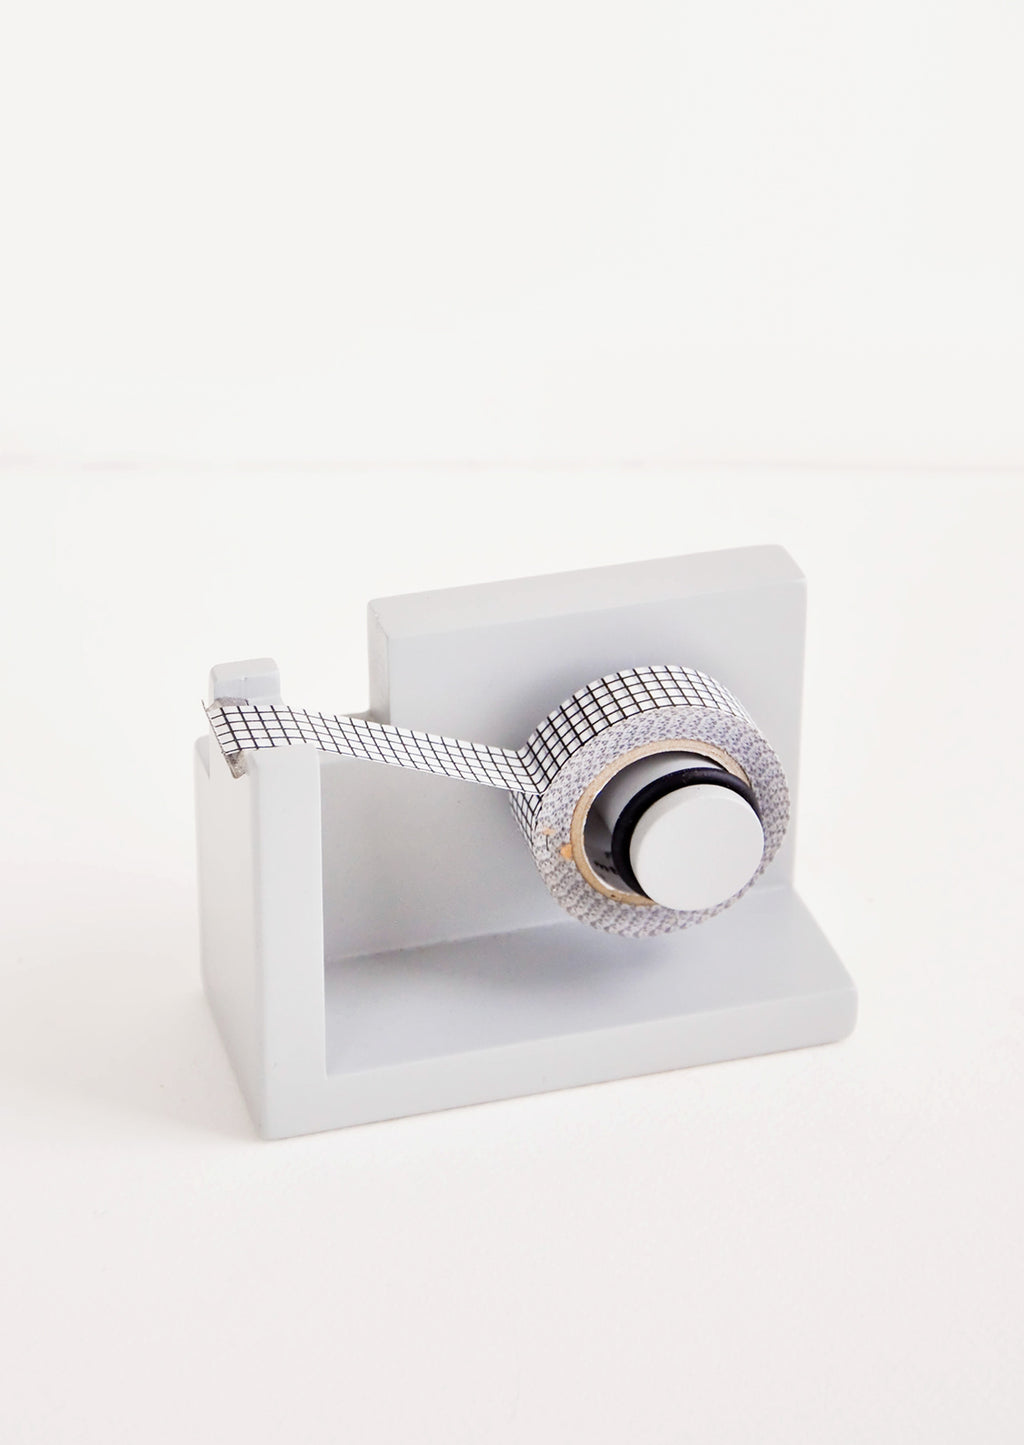 Fog: Gray wooden tape dispenser with black and white tape.